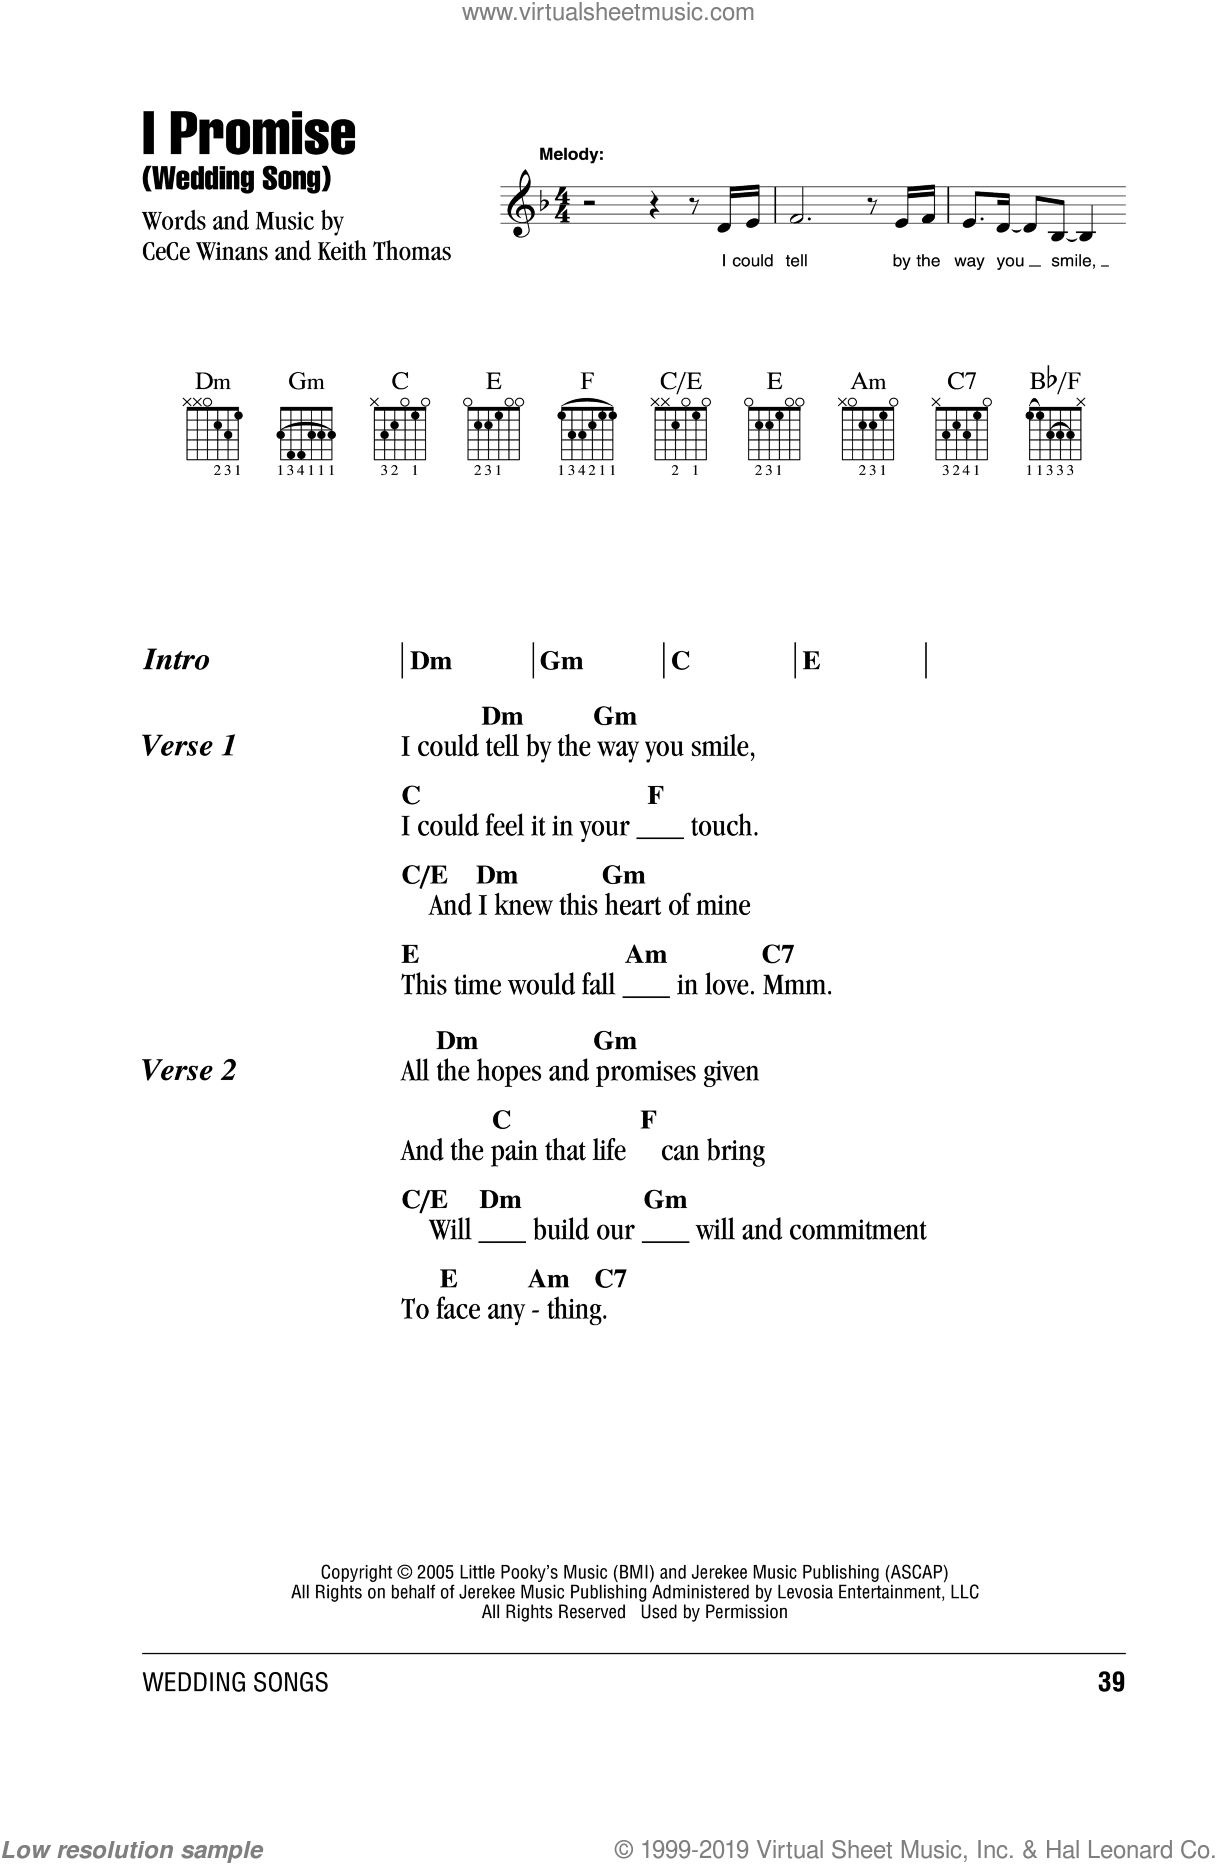 I Promise (Wedding Song) sheet music for guitar (chords) by Keith Thomas